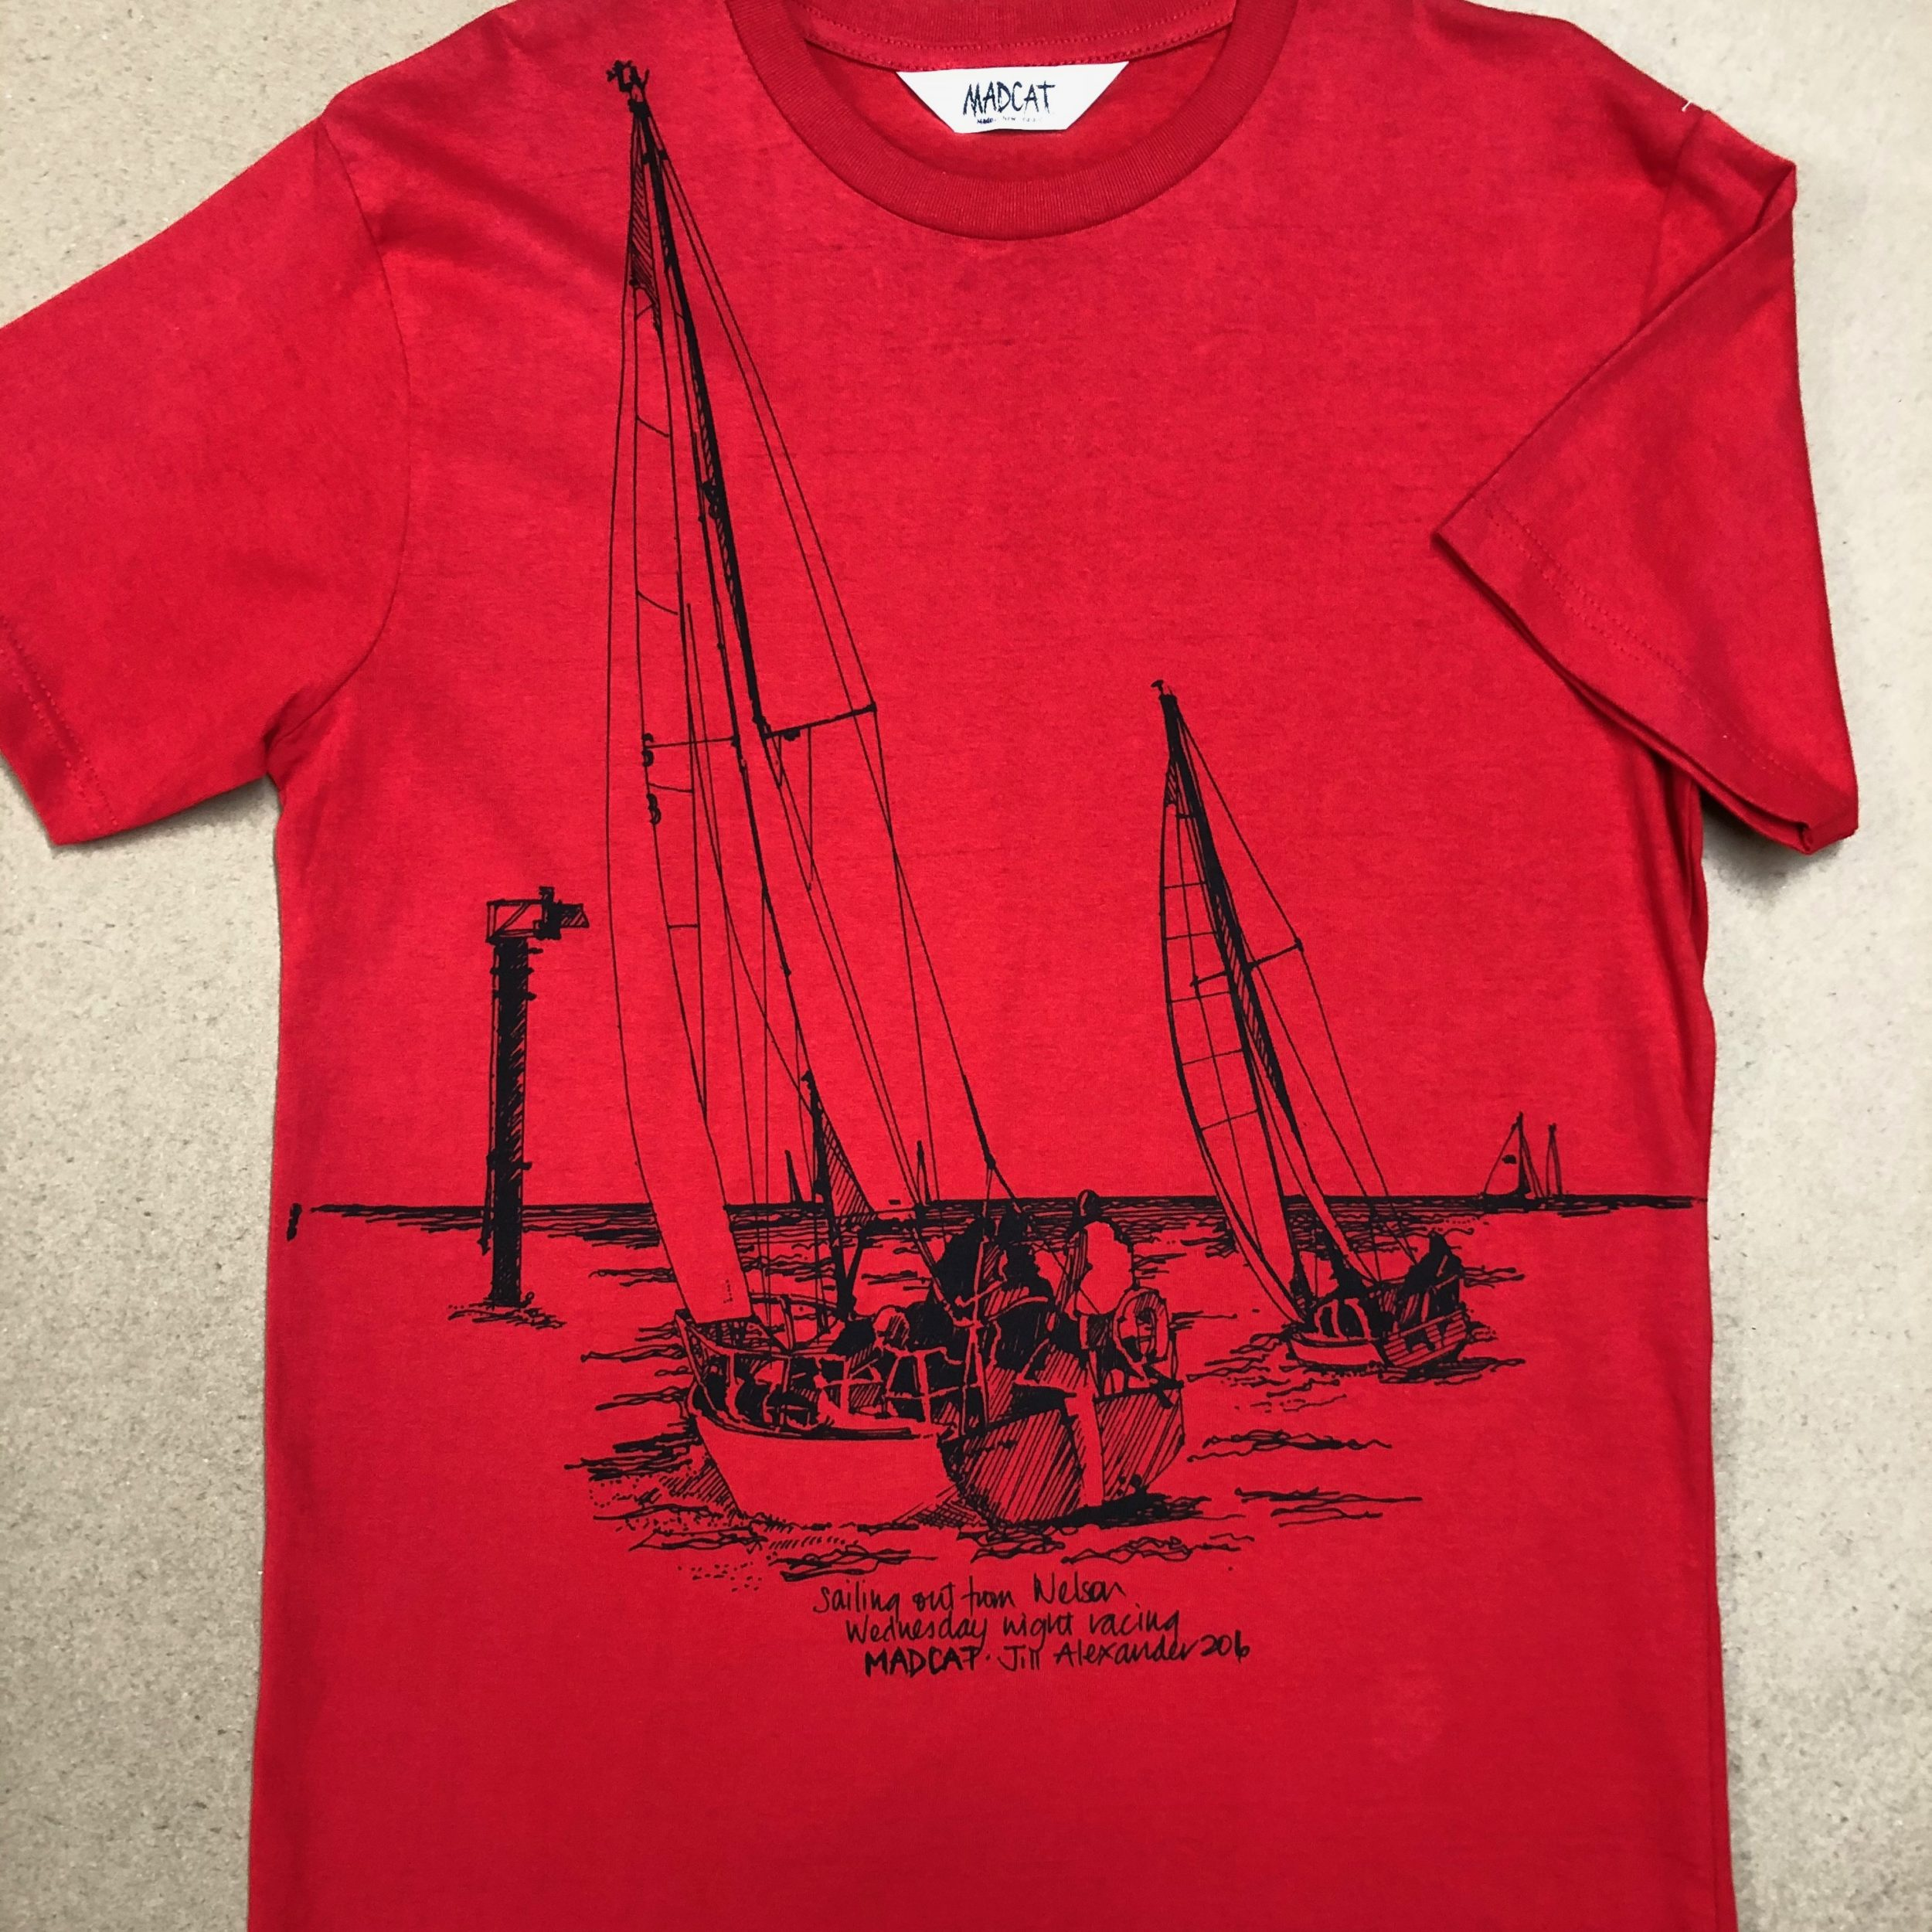 Sailing boat T shirt printed in red size small.